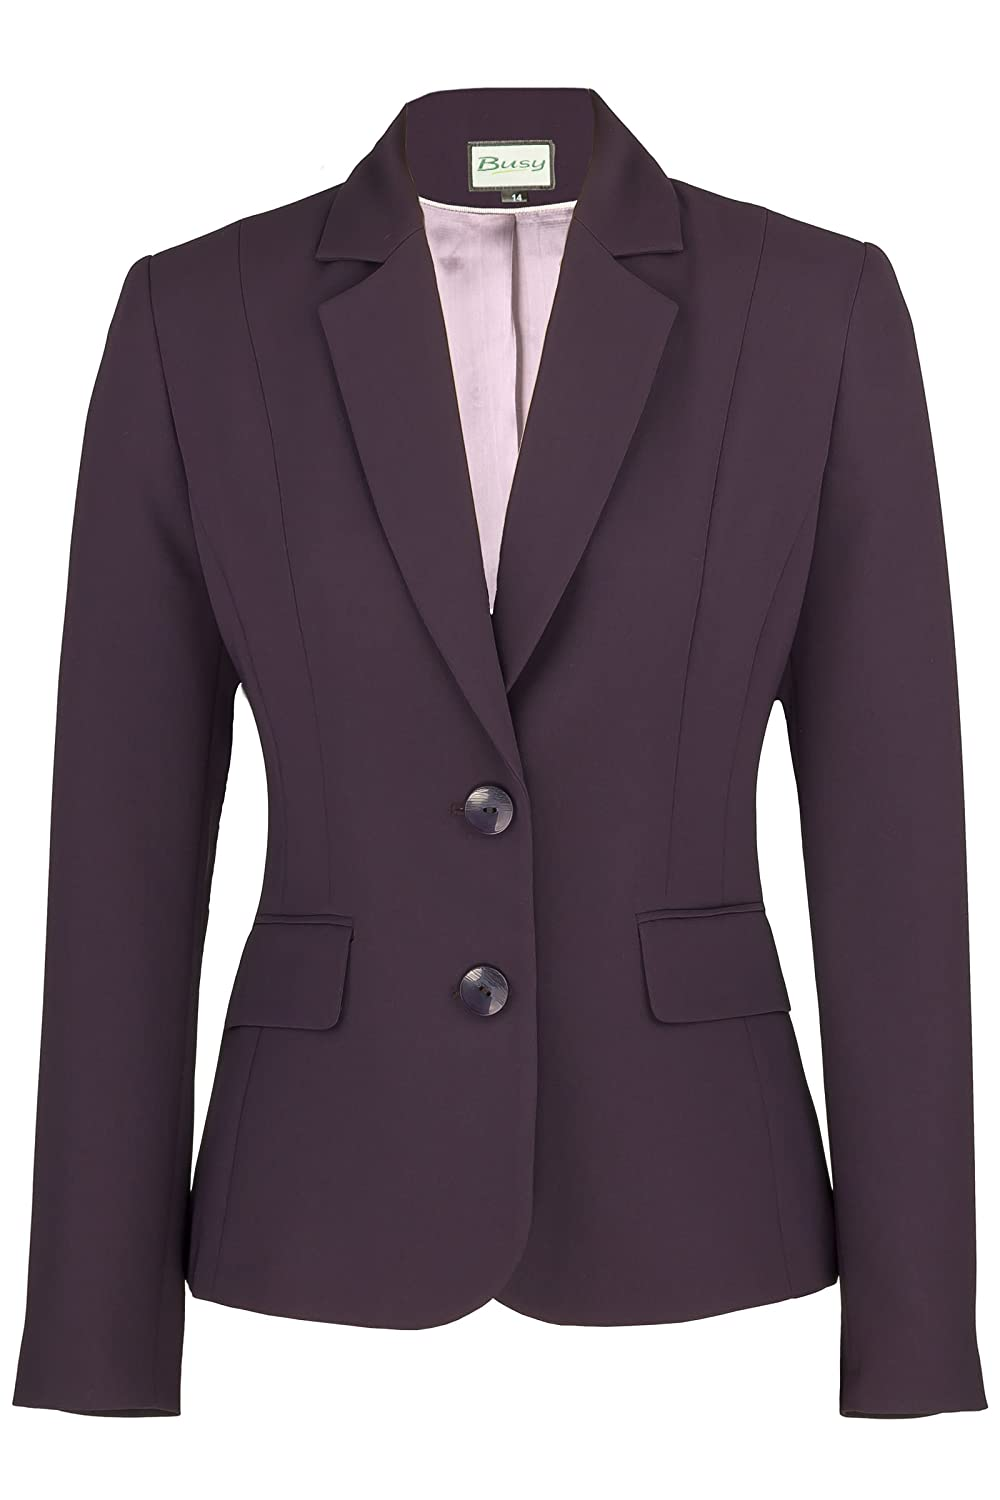 Busy Clothing Womens Dark Purple Suit Jacket